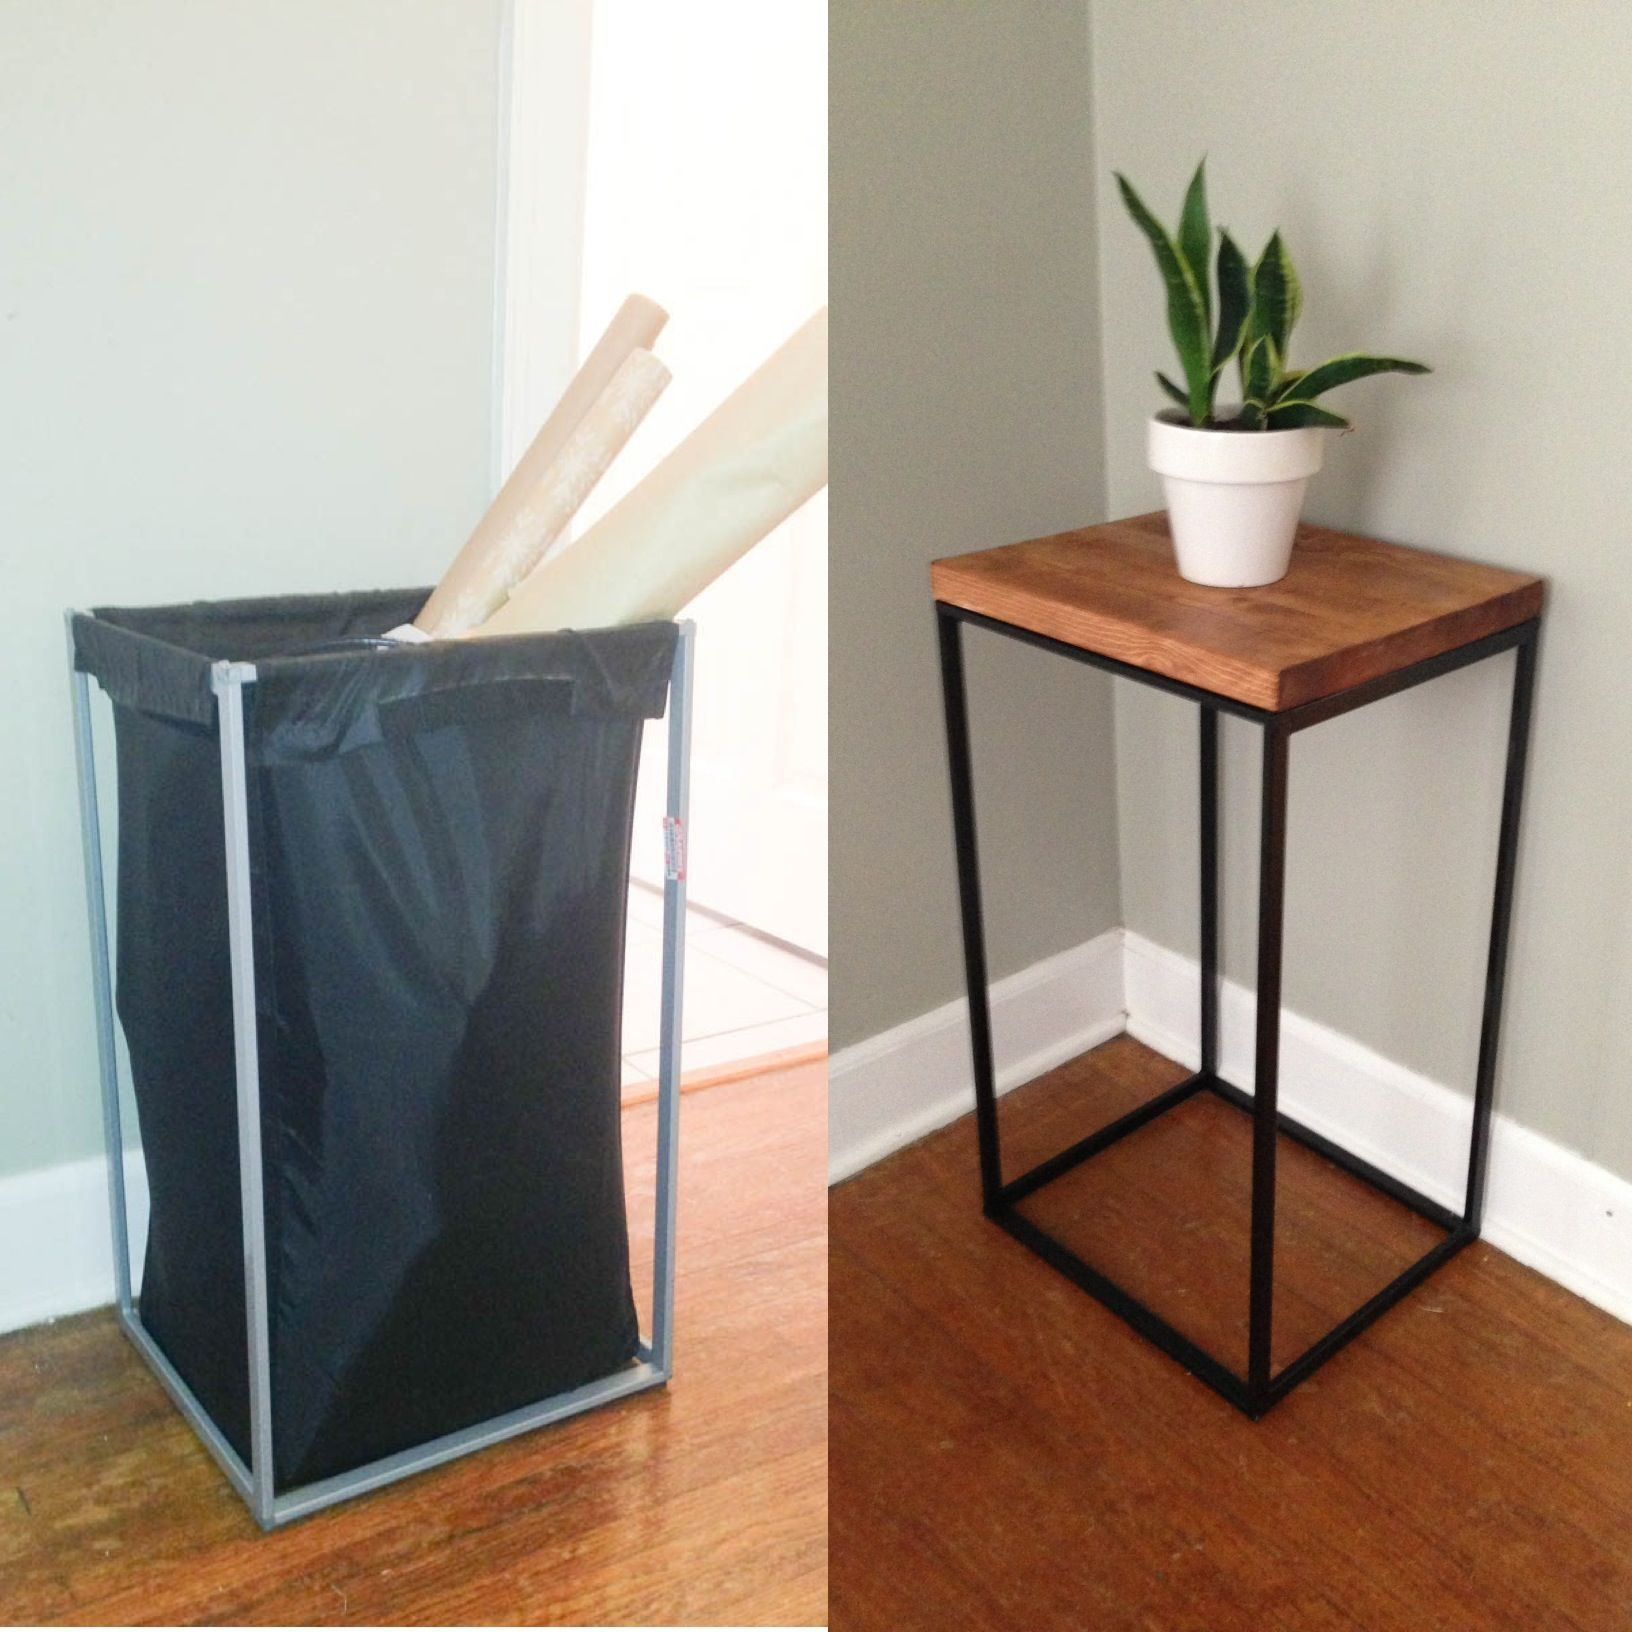 Diy side table from old ikea laundry hamper the clever Ikea hacking